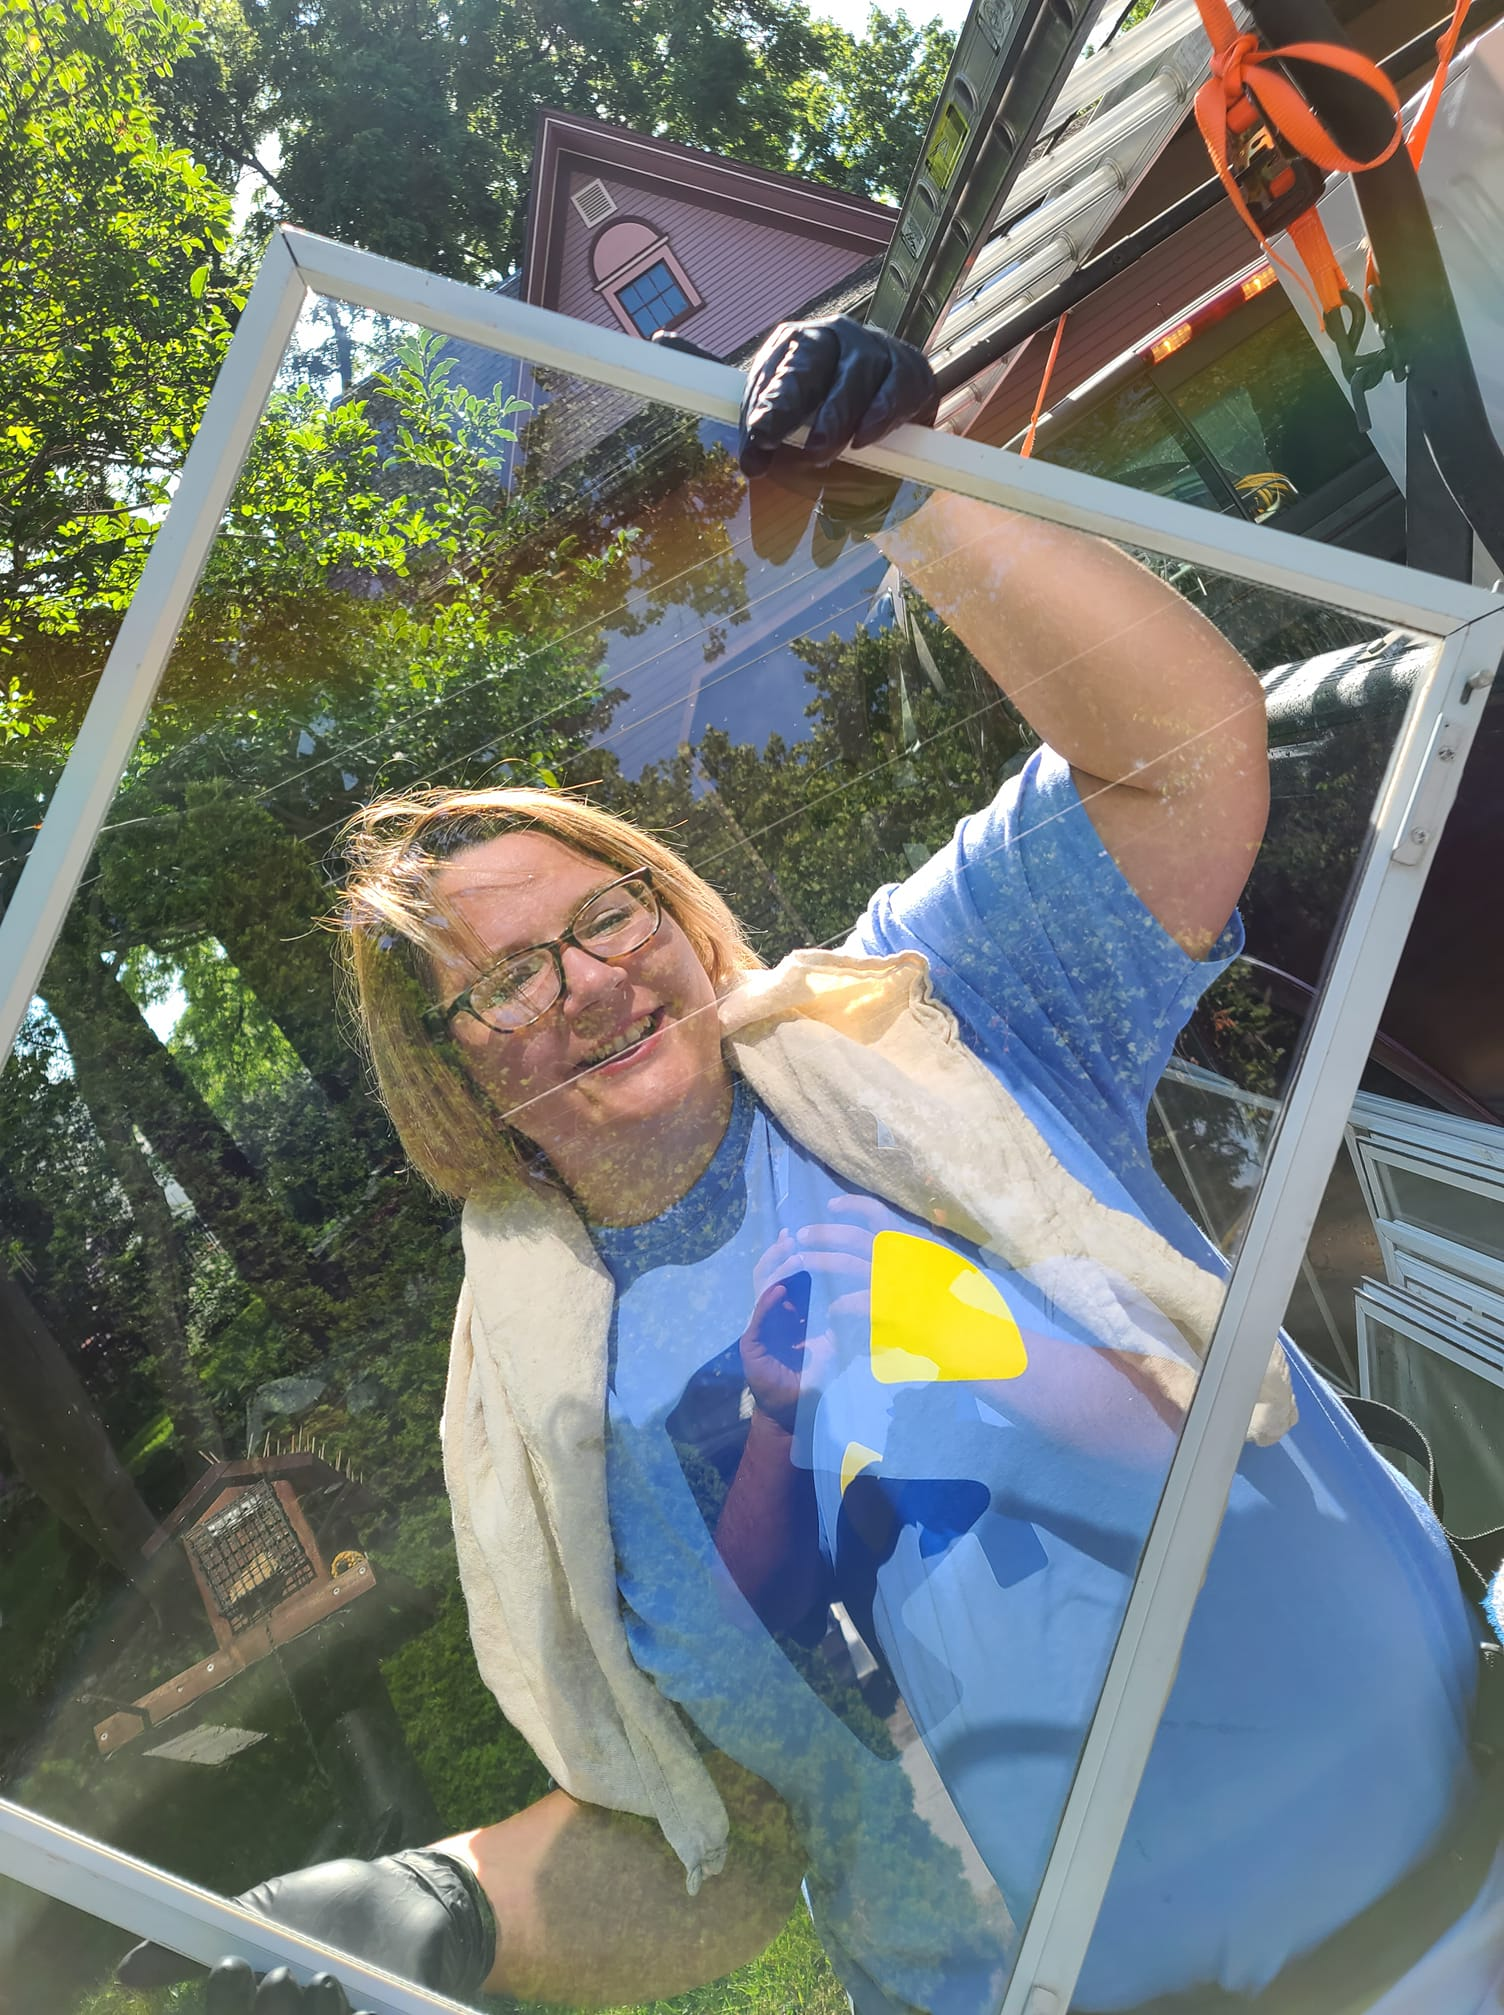 Photo number 18 of Paneless Window Cleaning LLC's best work performing a null job